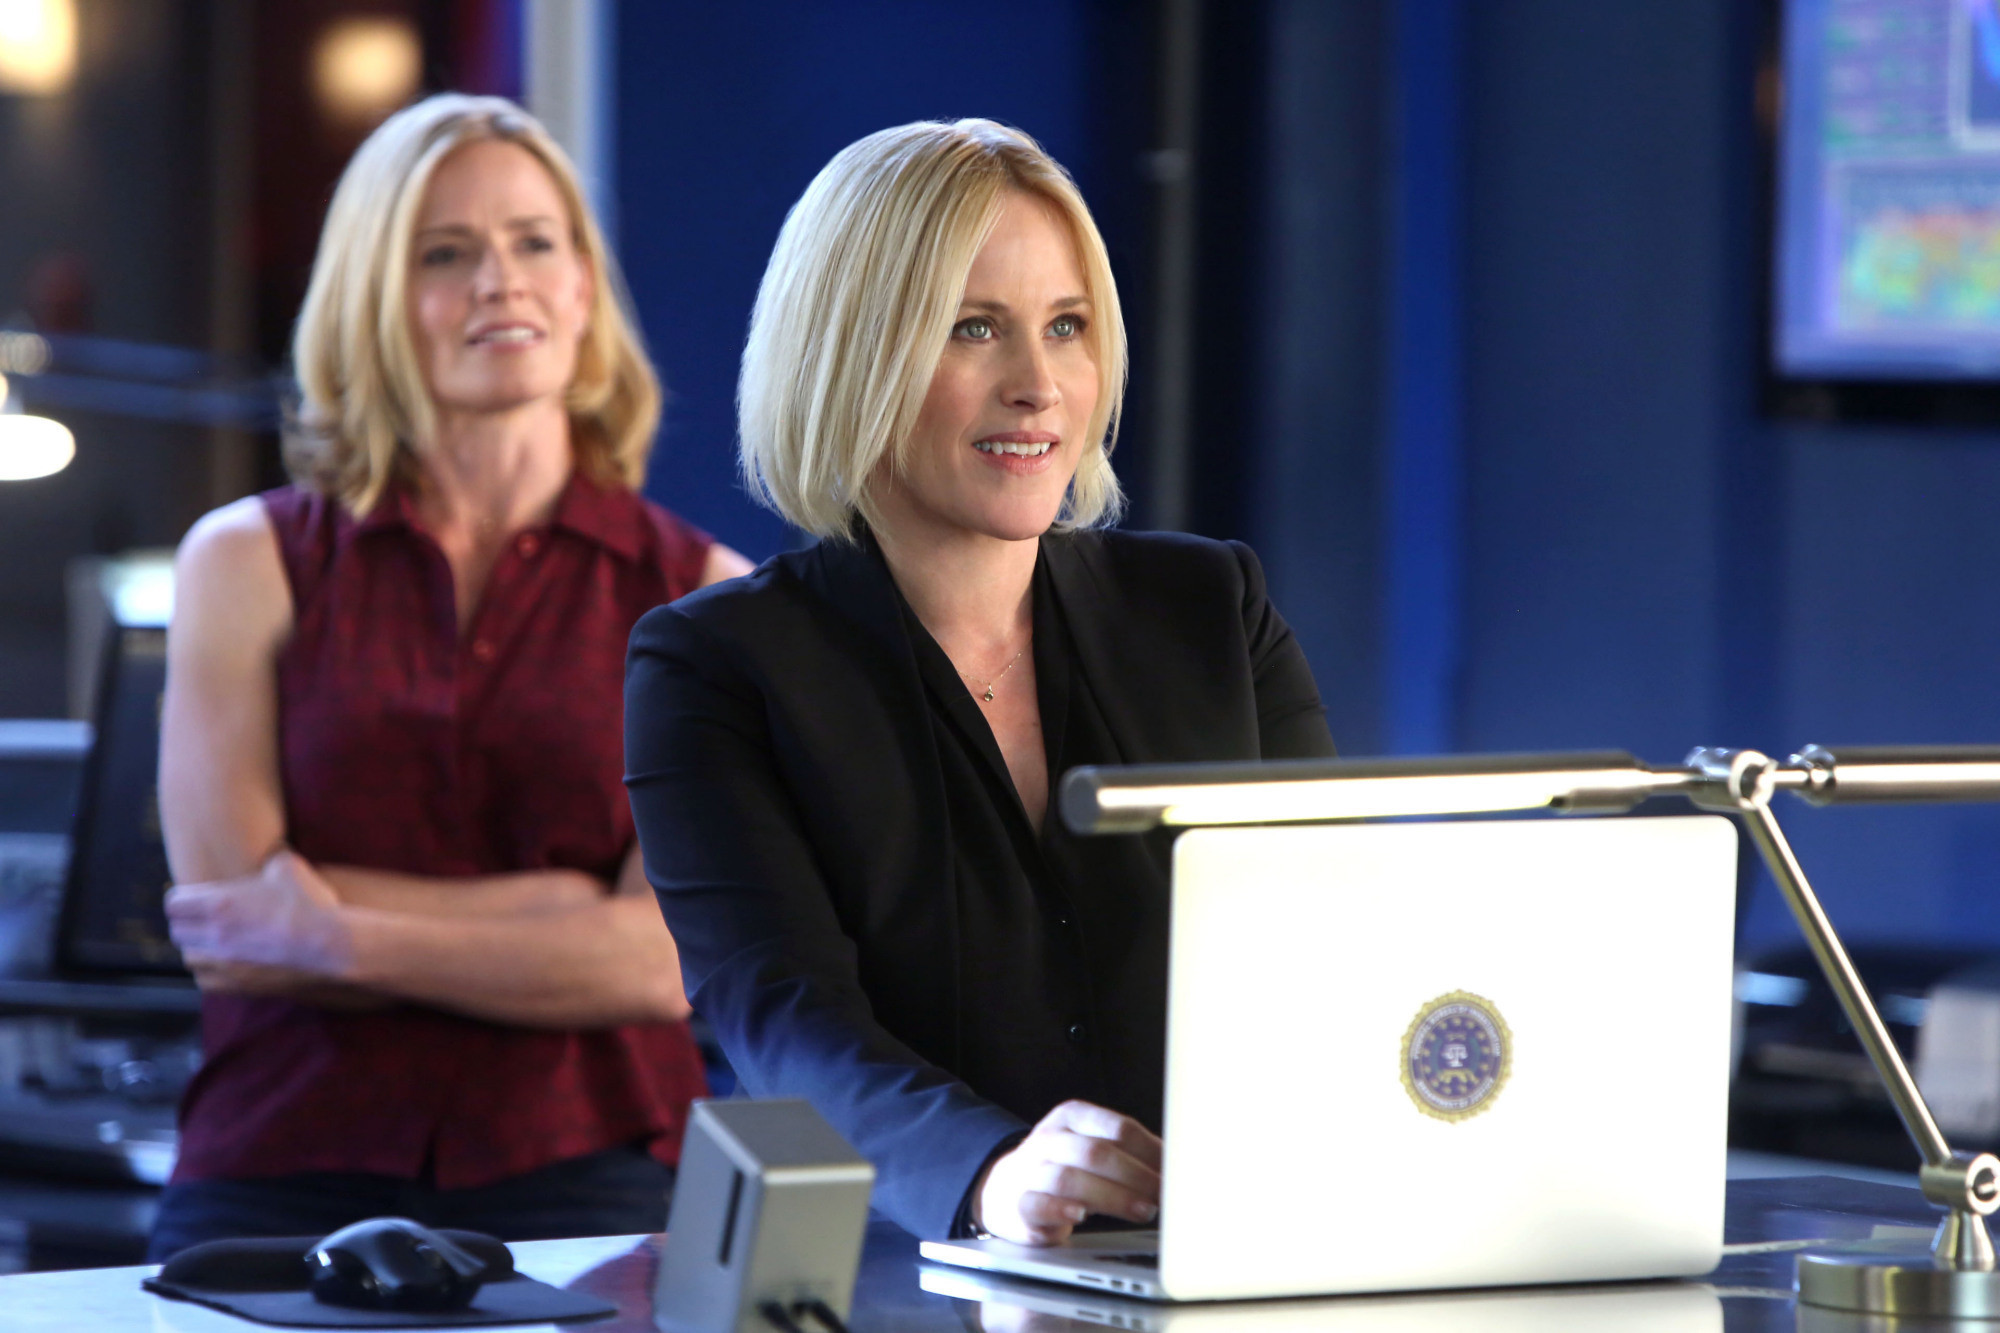 http://www.trbimg.com/img-536e525c/turbine/la-et-st-cbs-picks-up-csi-cyber-with-patricia-arquette-20140509